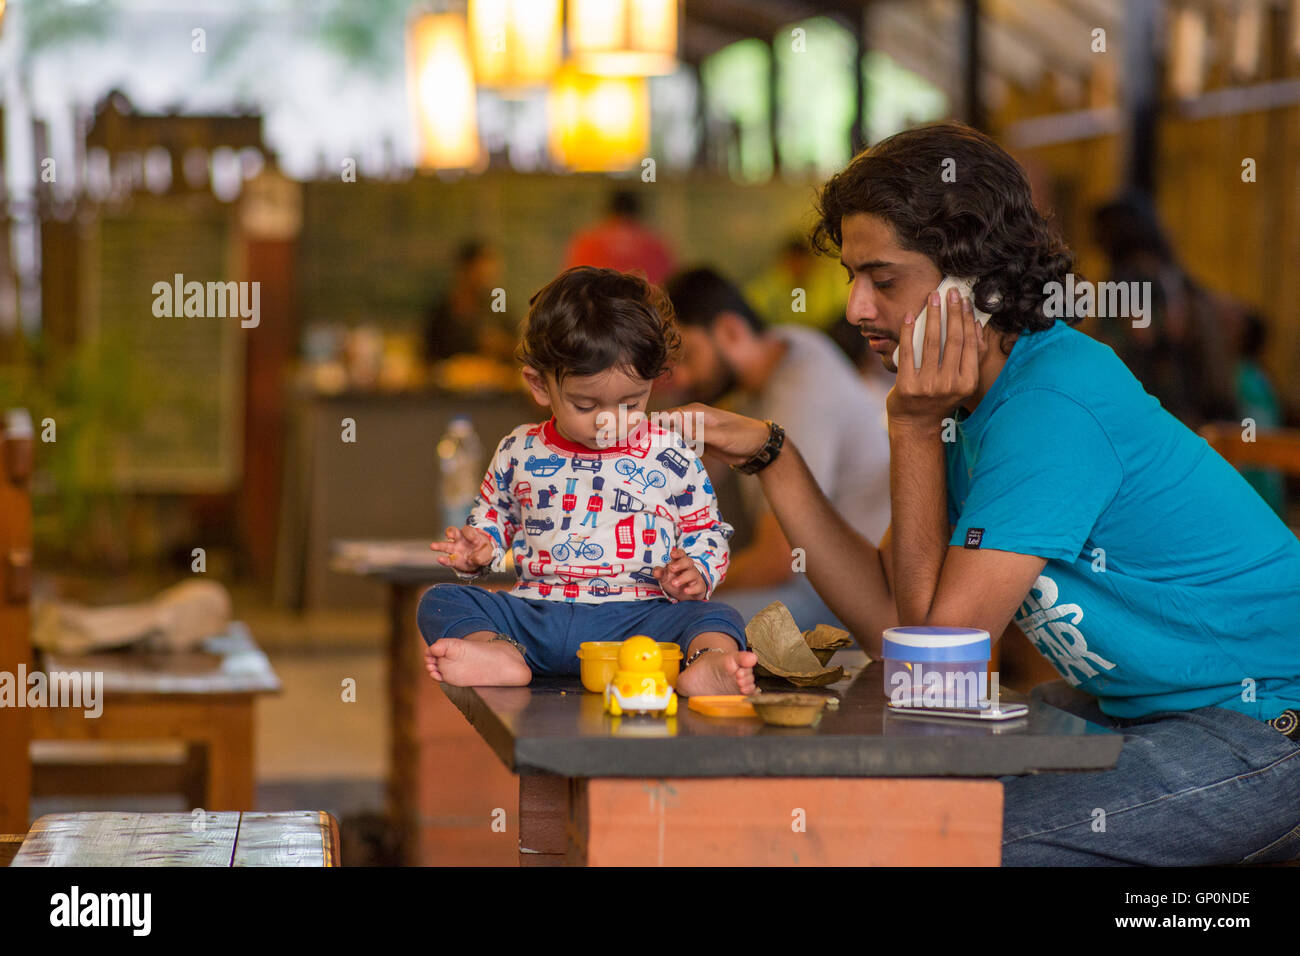 Dad talking on the phone while his baby is playing on the table at a café in Bangalore, India. - Stock Image